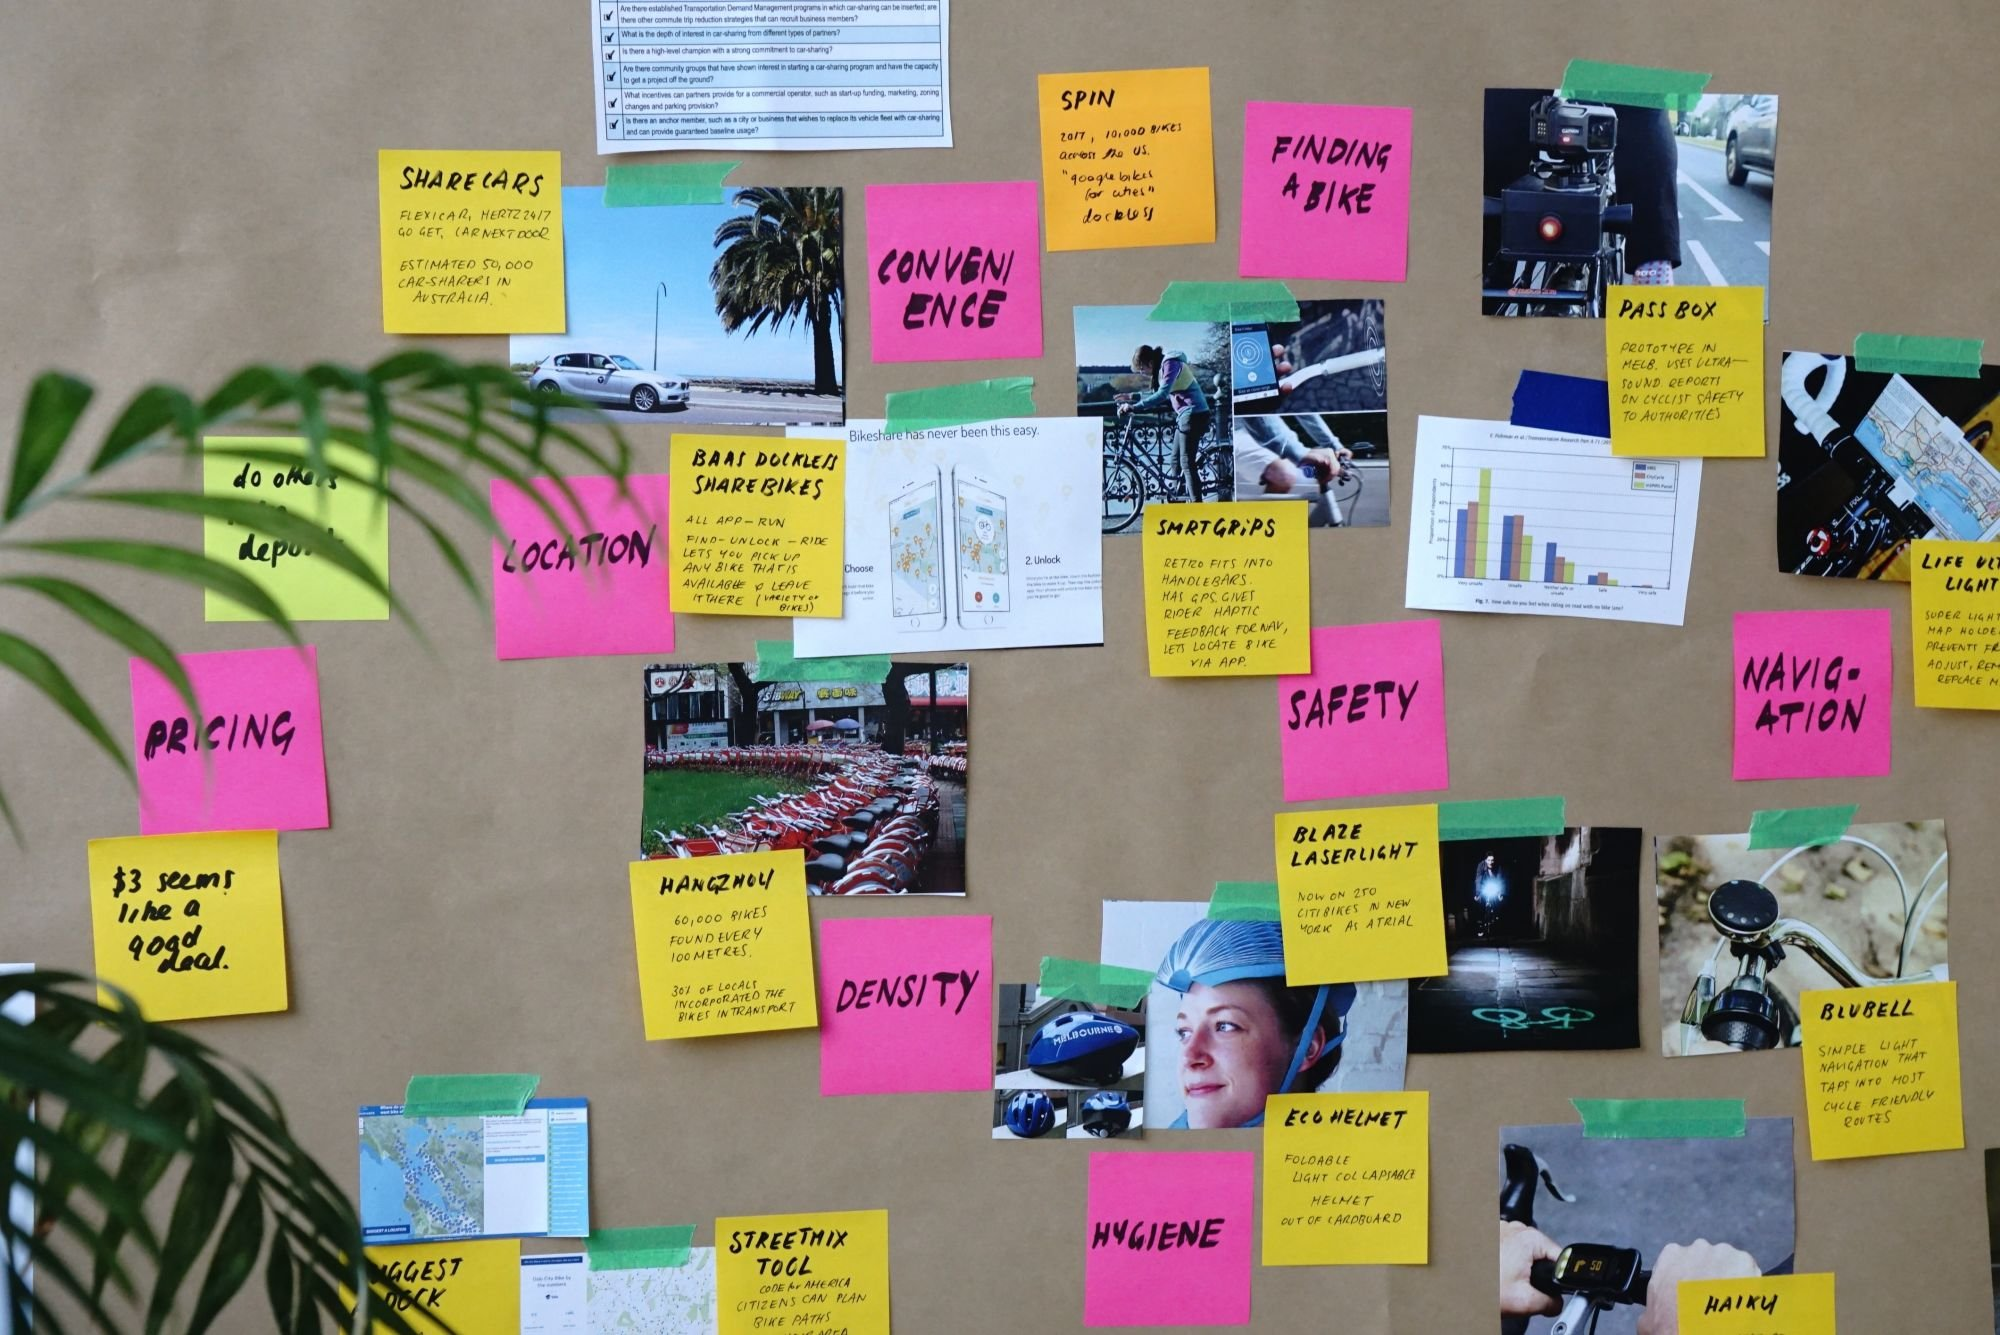 Image Ad And Creative Design Images Displayed On Pegboard For Review And Strategic Planning